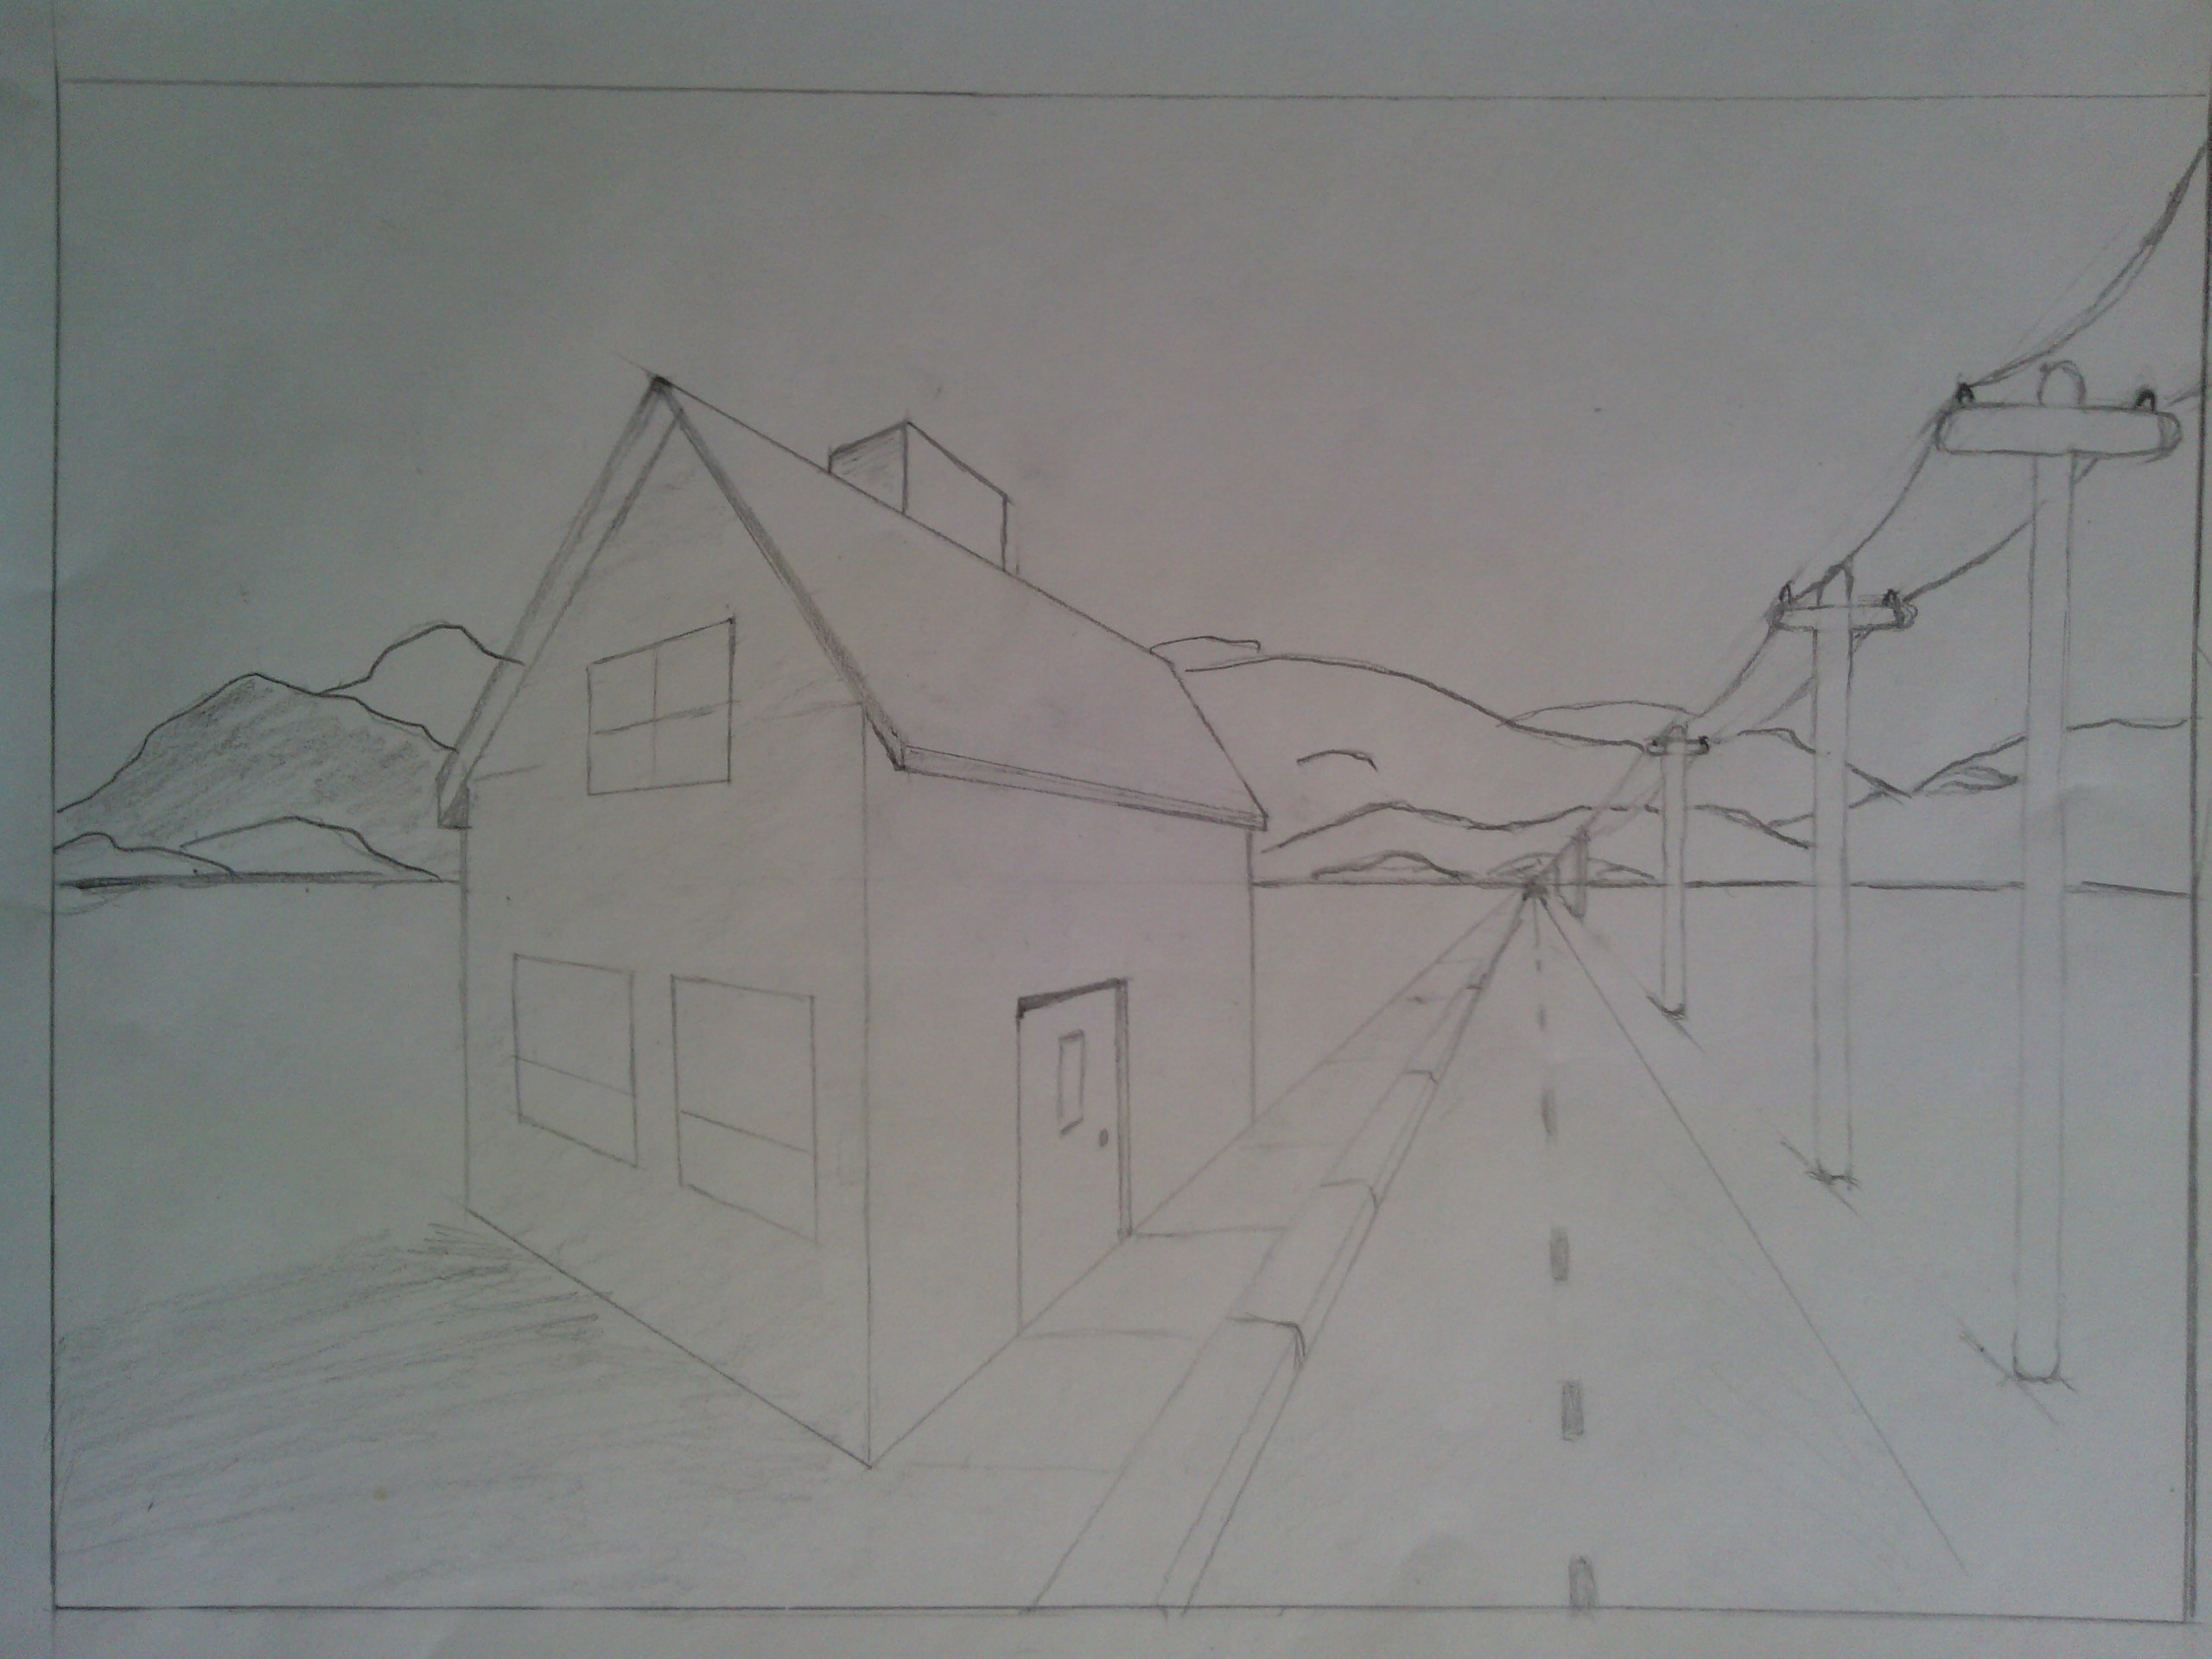 Practicing 2-Point Perspectives, Lonely House by Stone-Cold-Stone